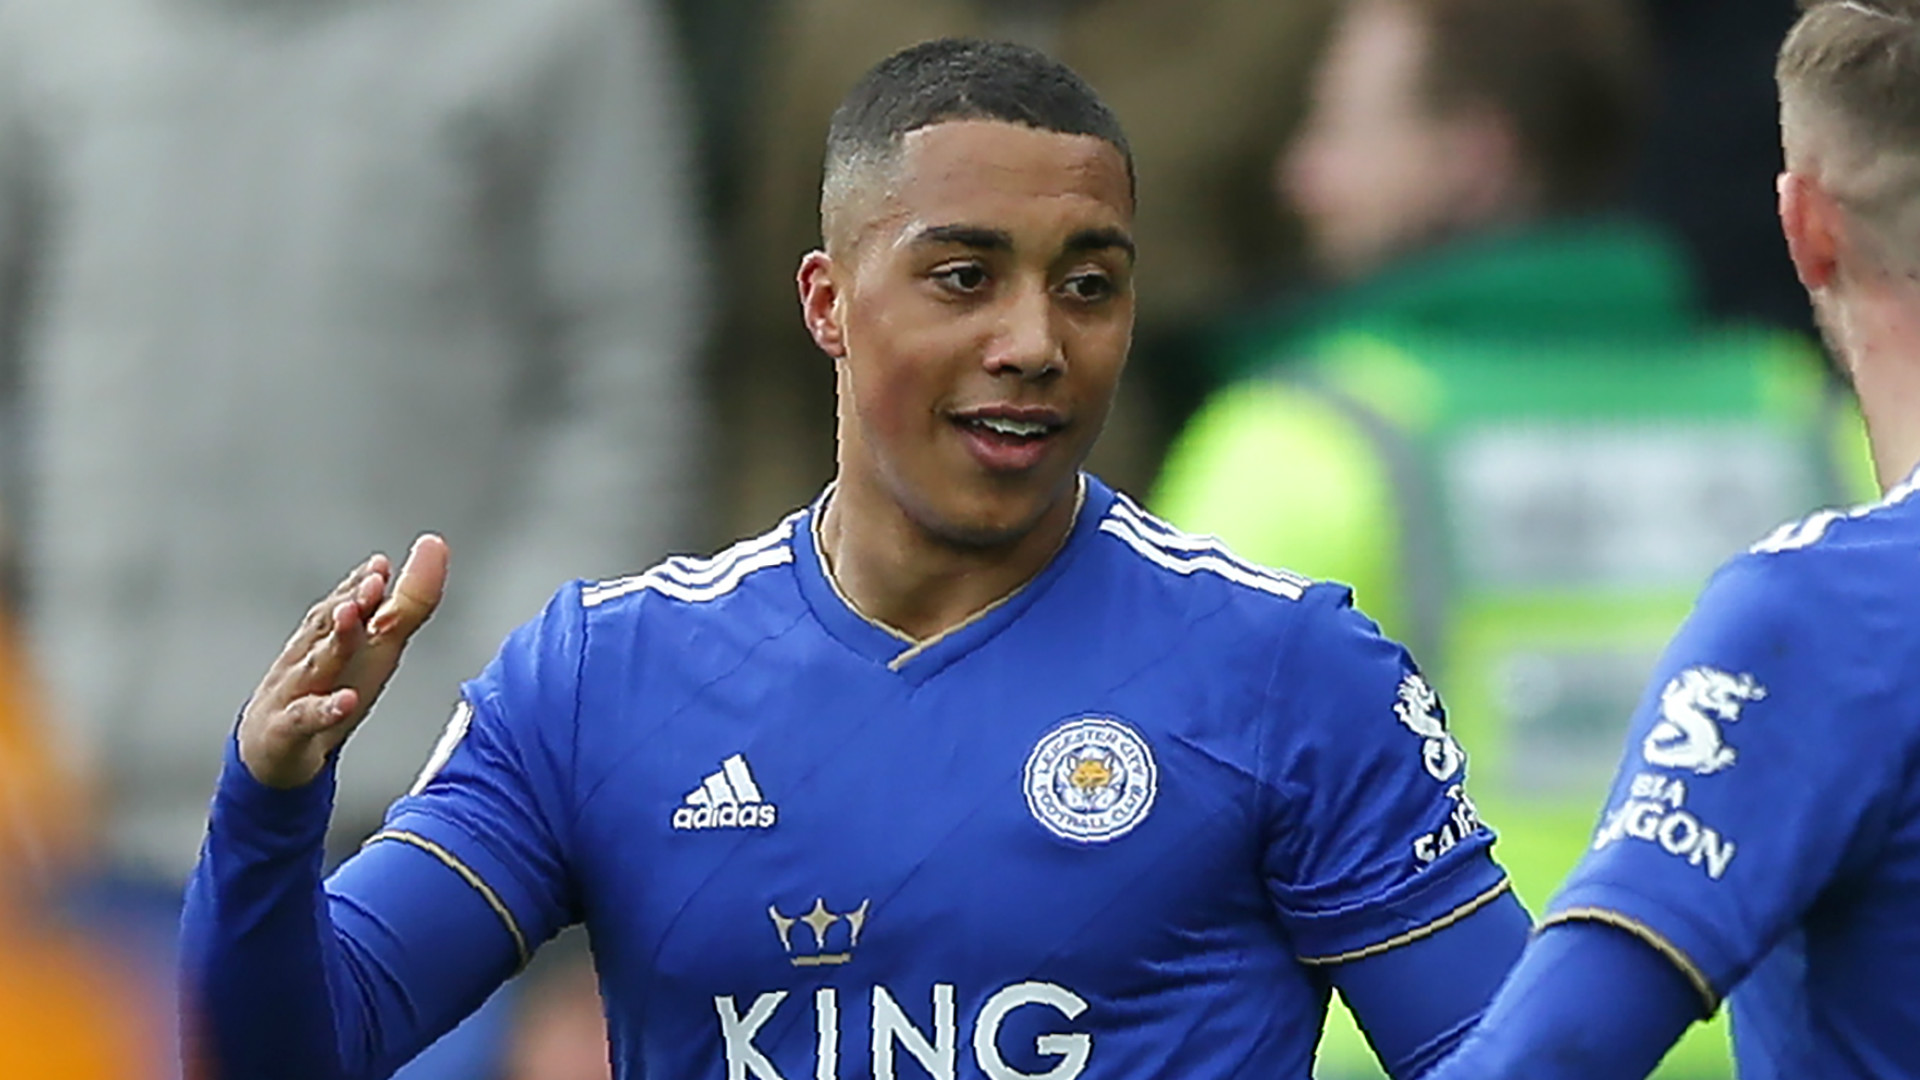 'I wanted to keep playing at a positive club' - Tielemans reveals why he joined Leicester amid Man Utd links